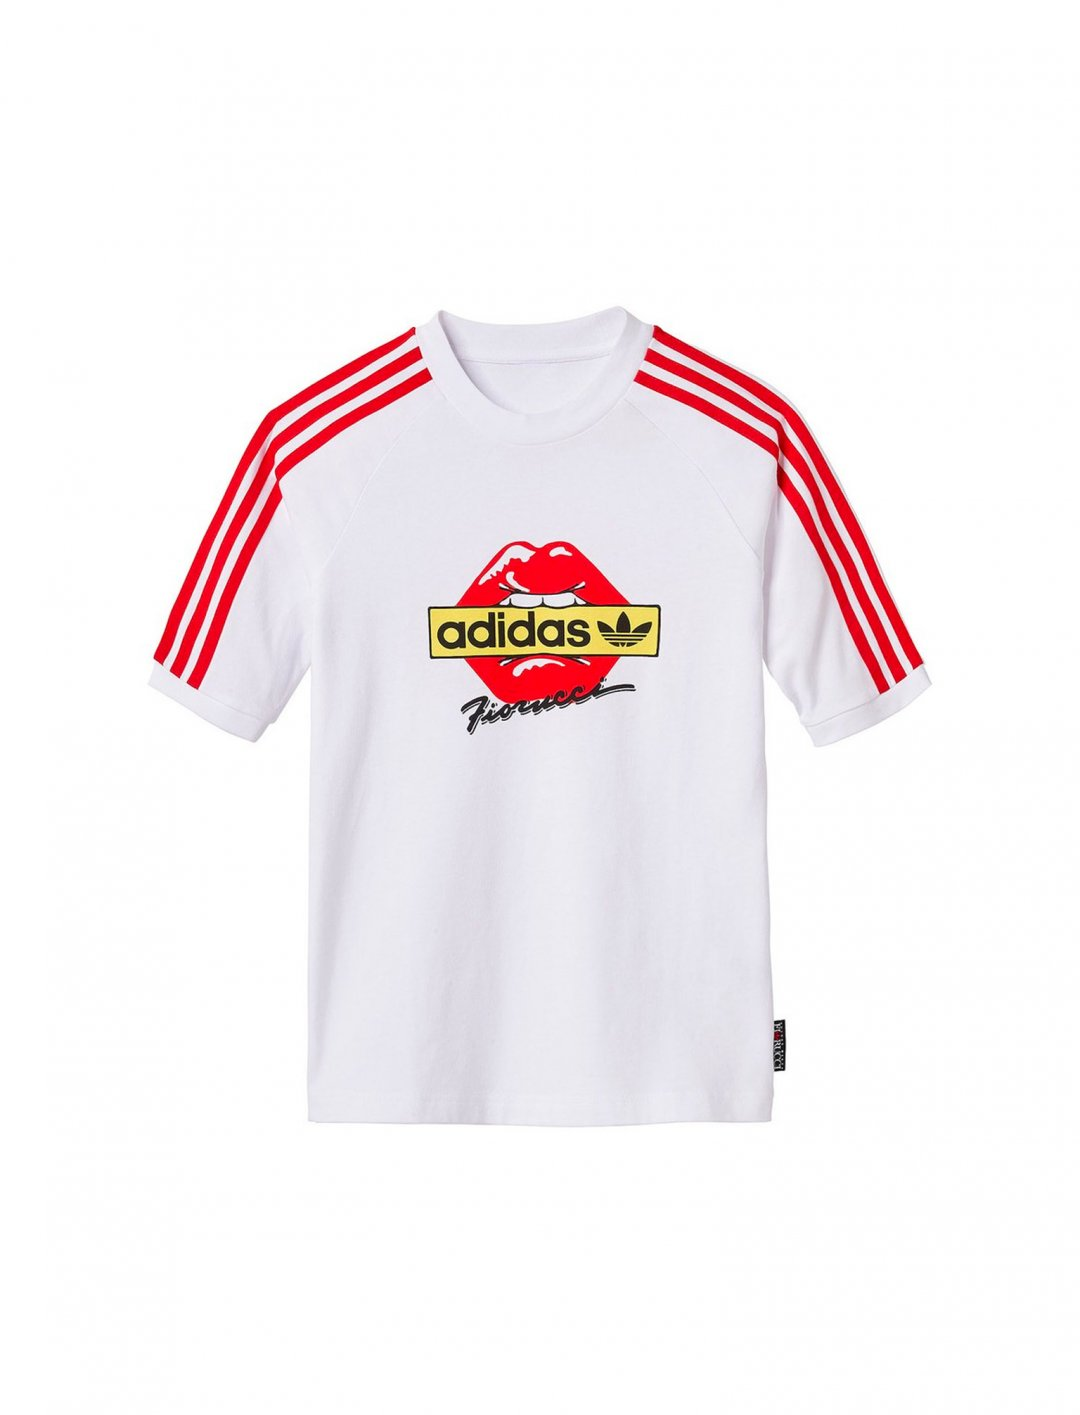 "Fiorucci Kiss T-shirt {""id"":5,""product_section_id"":1,""name"":""Clothing"",""order"":5} Adidas x Fiorucci"